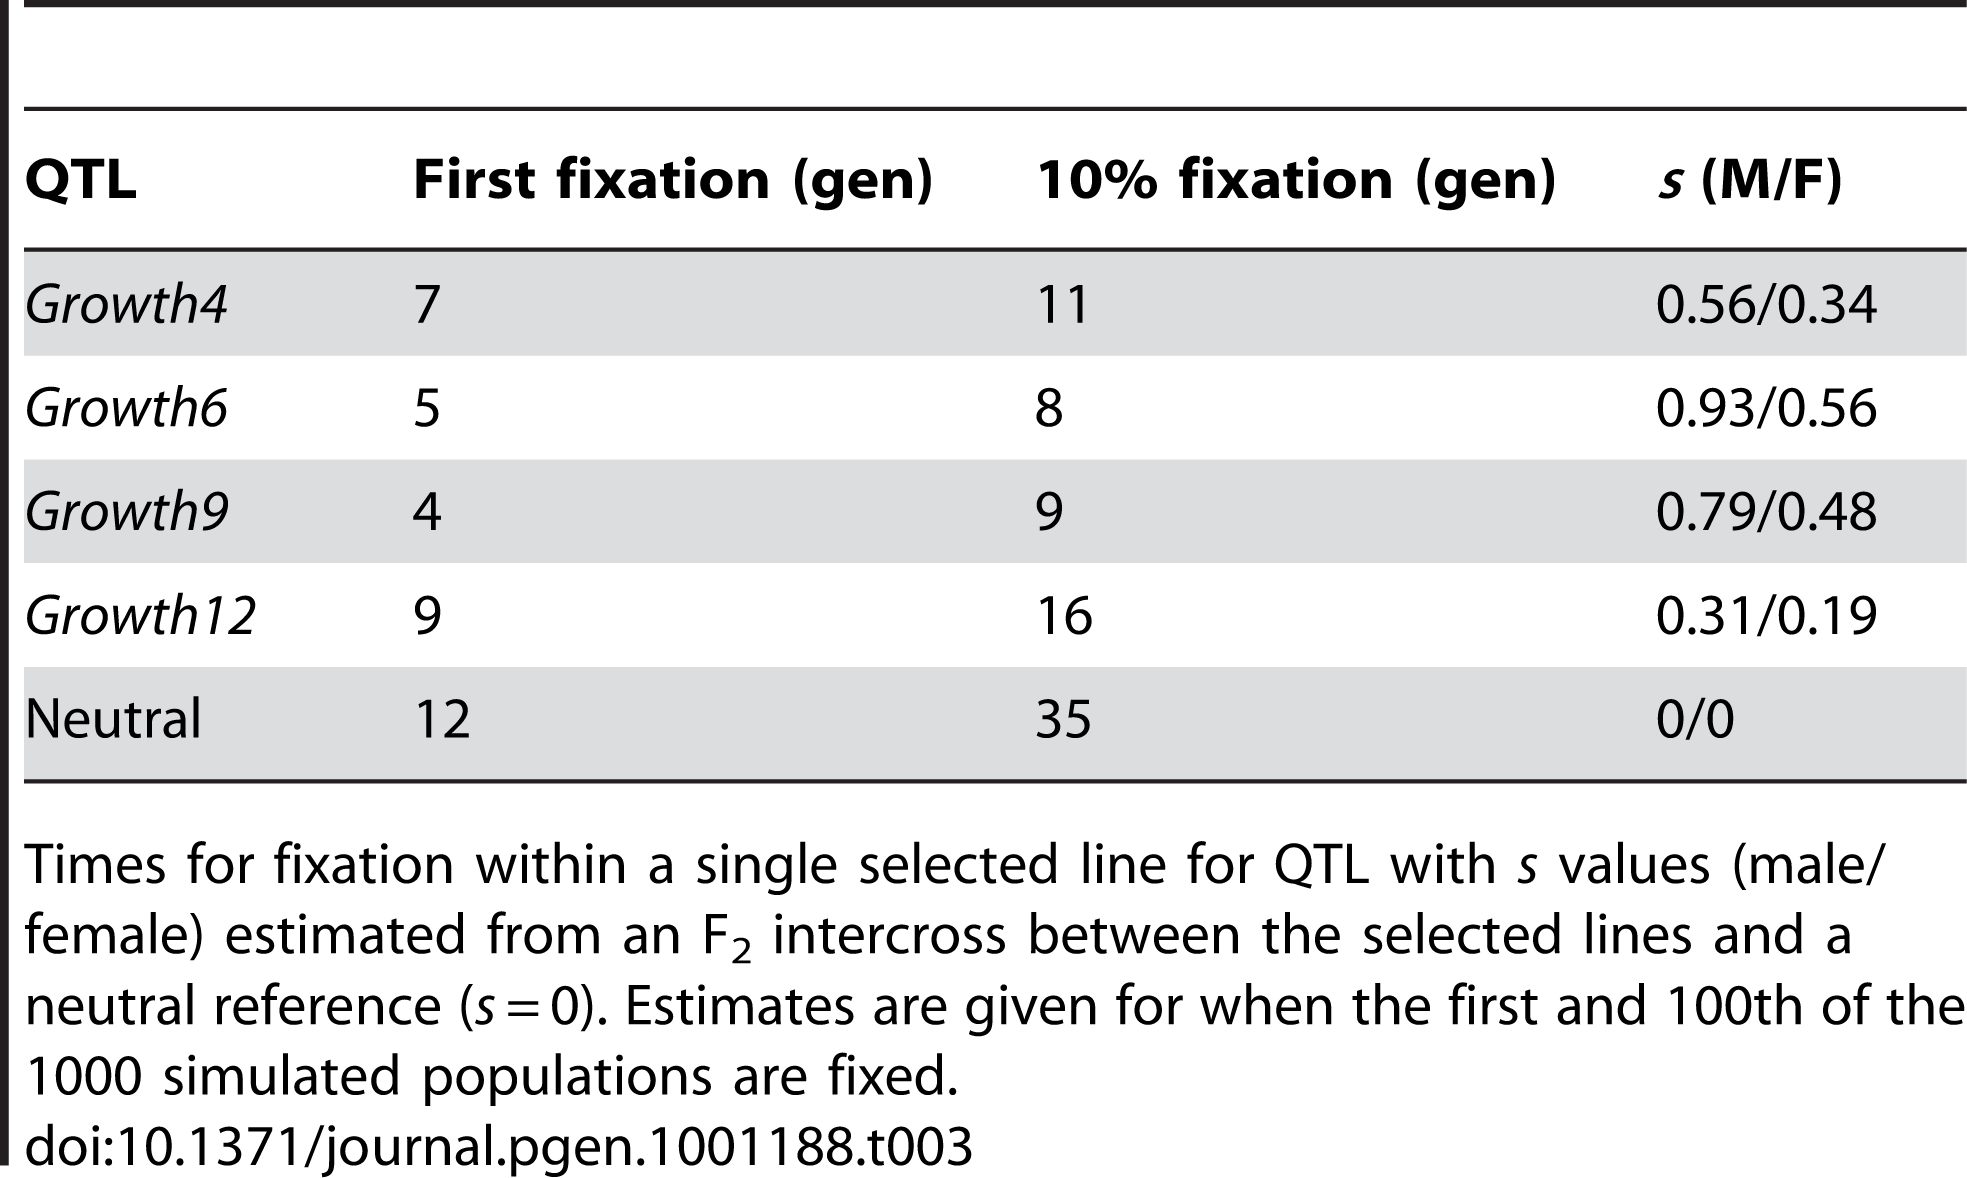 Estimated fixation times (in generations).